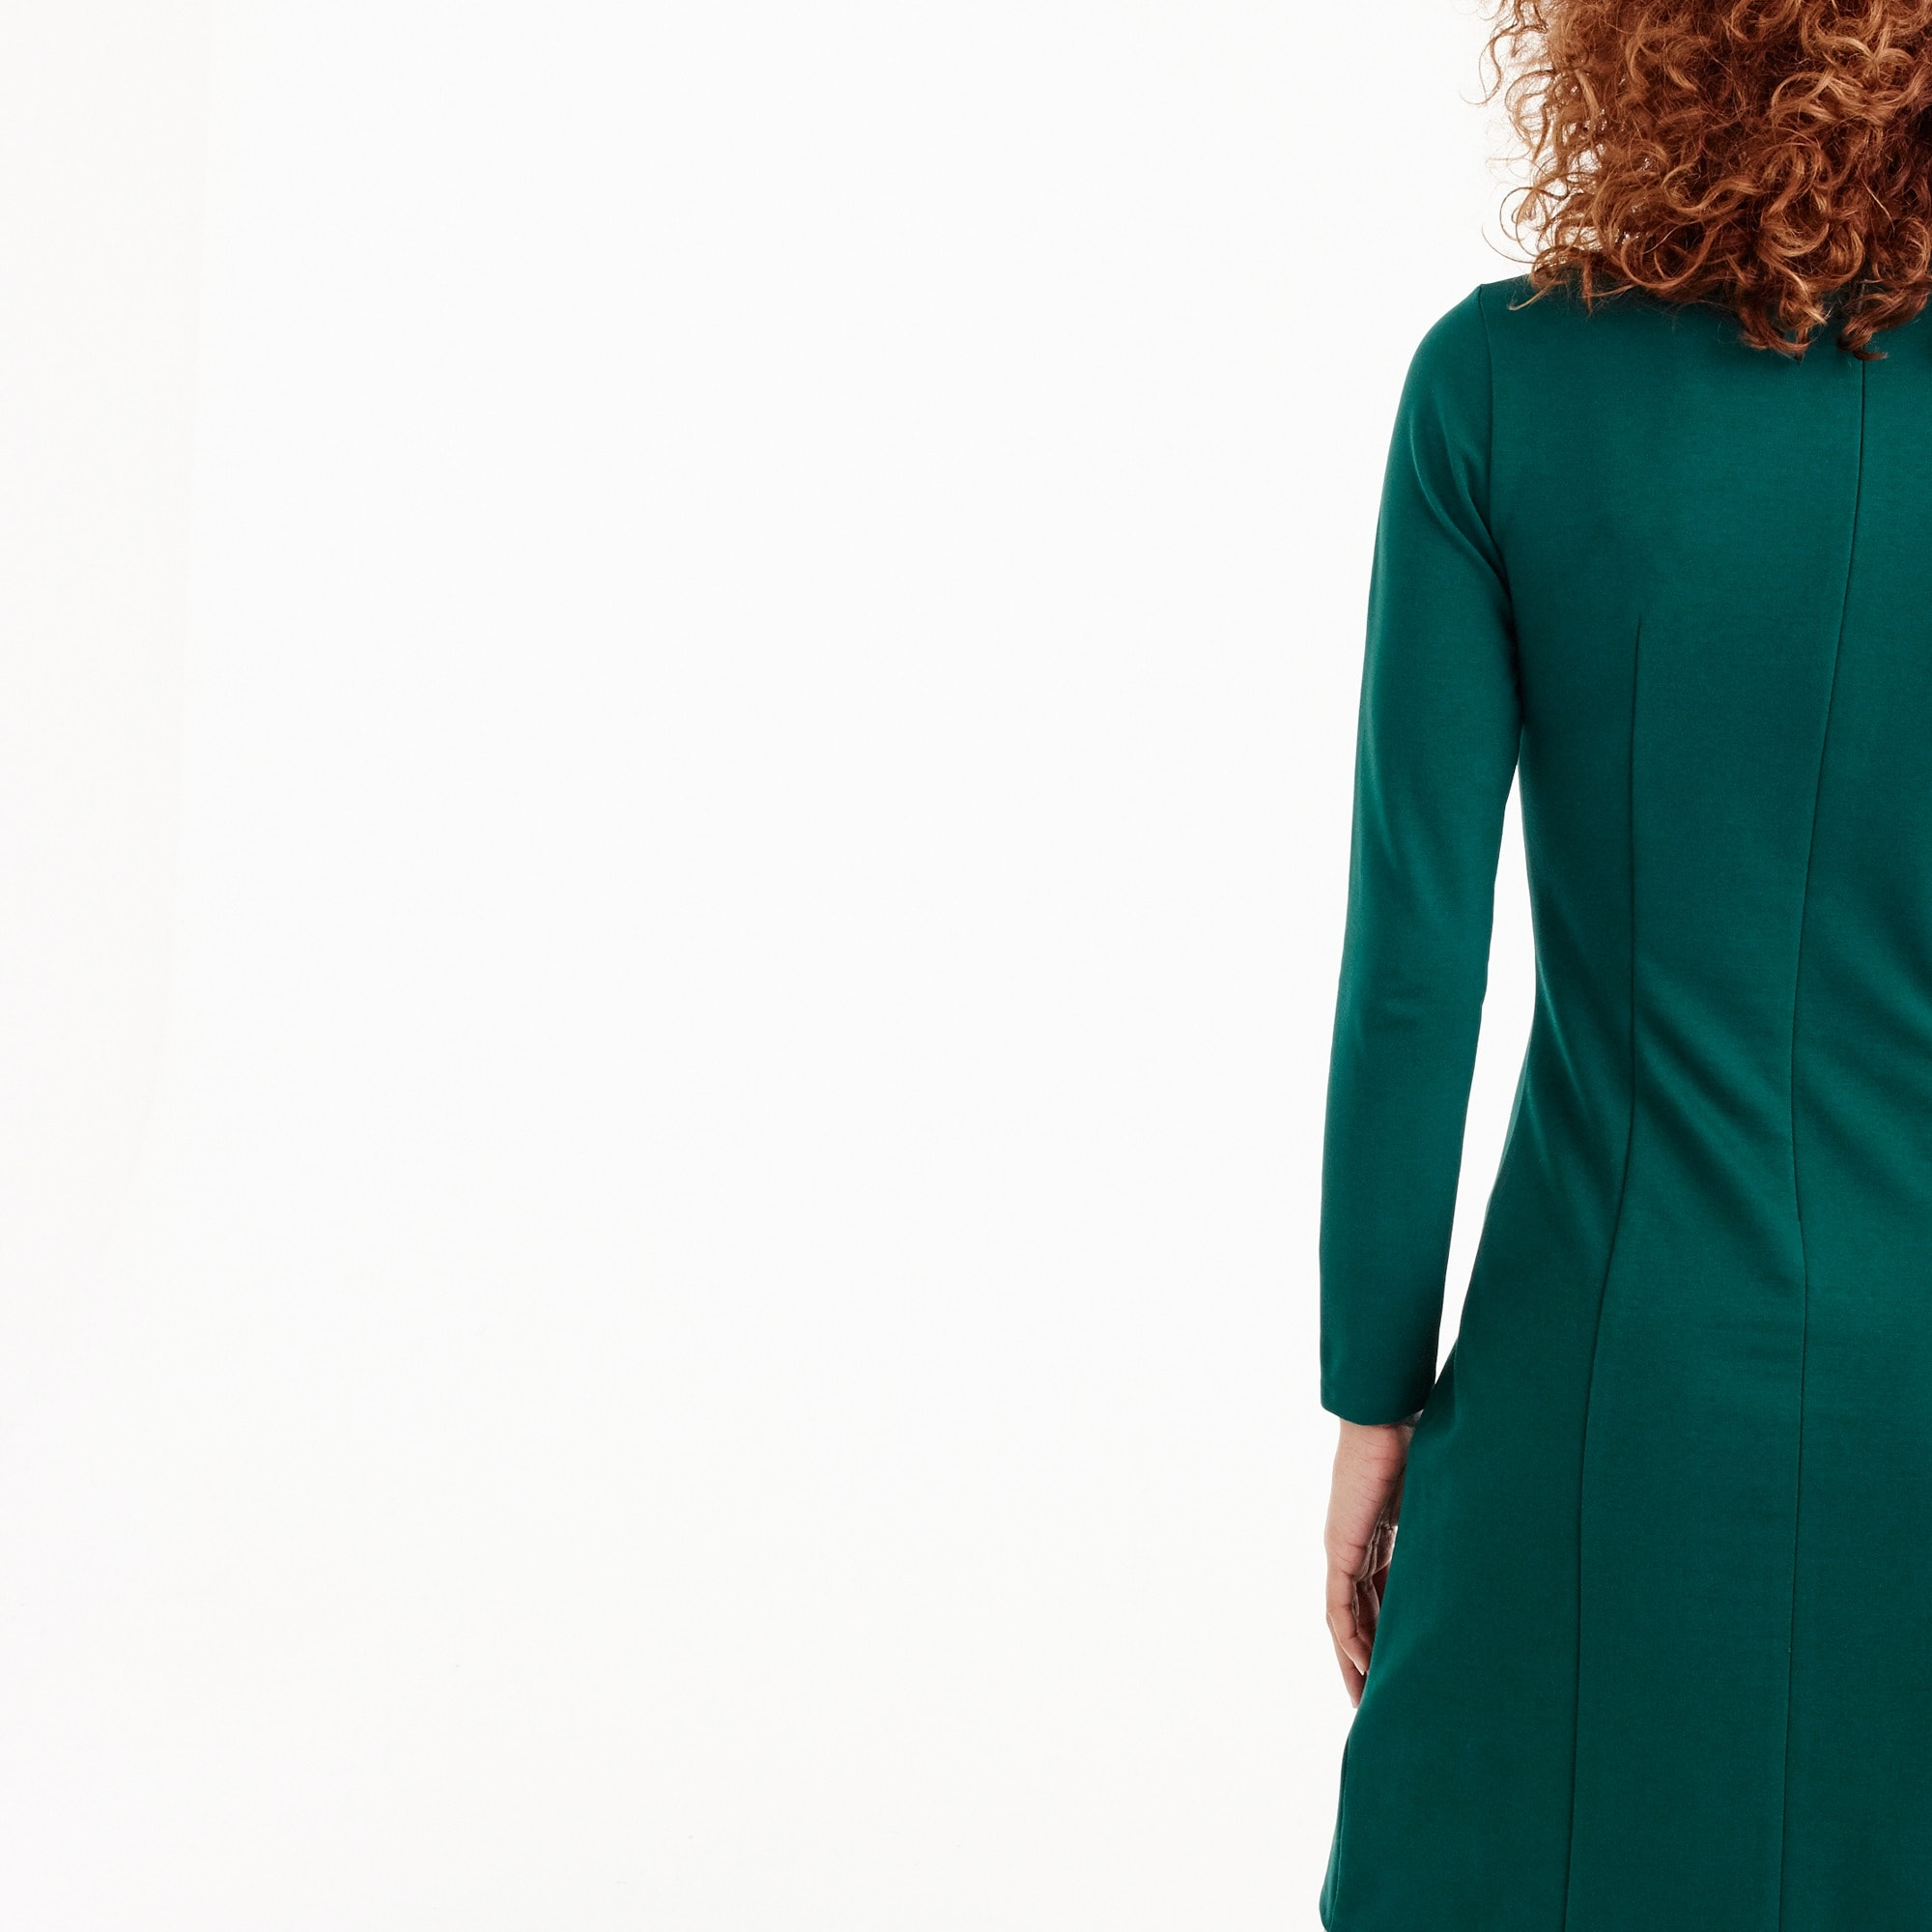 Image 3 for Petite Long-sleeve sheath dress